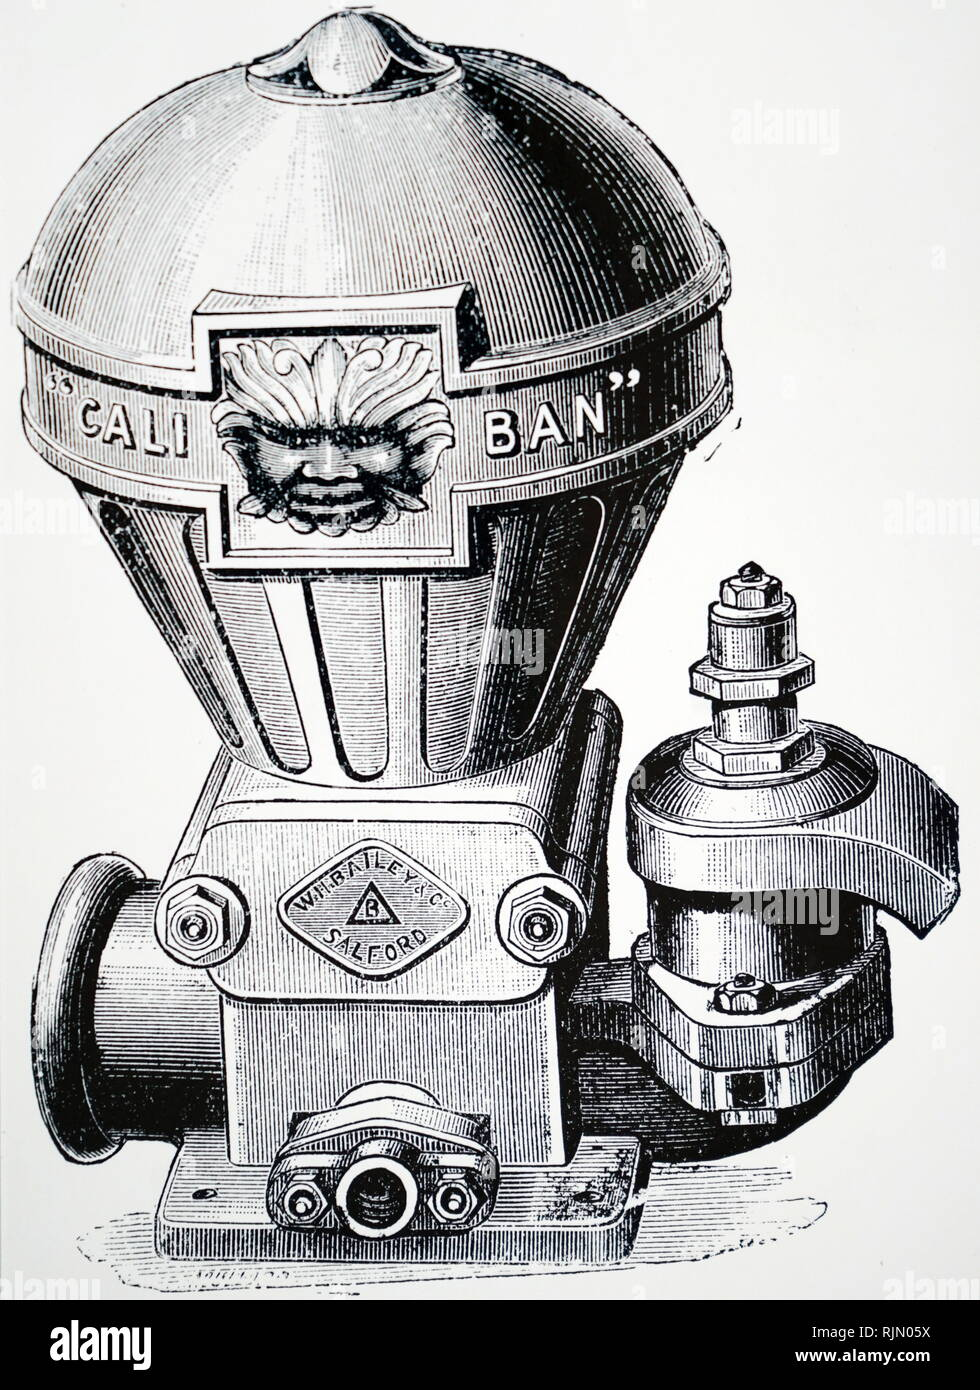 Illustration showing Hydraulic ram manufactured by W. H. Bailey of Manchester, and marketed under the name of 'Caliban'. - Stock Image